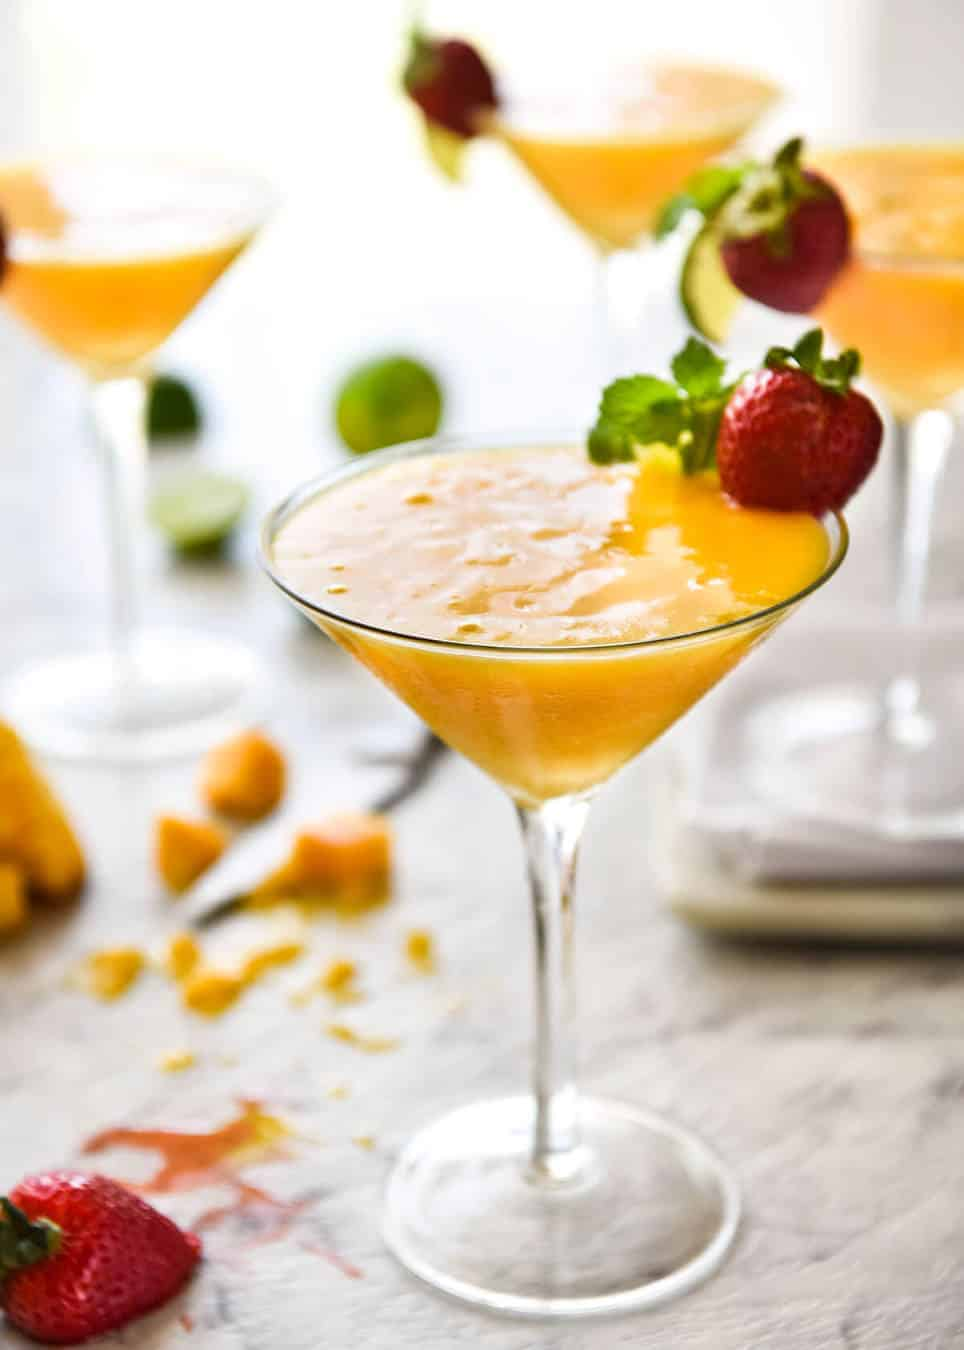 Mango Daiquiris in cocktail glasses garnished with strawberries.